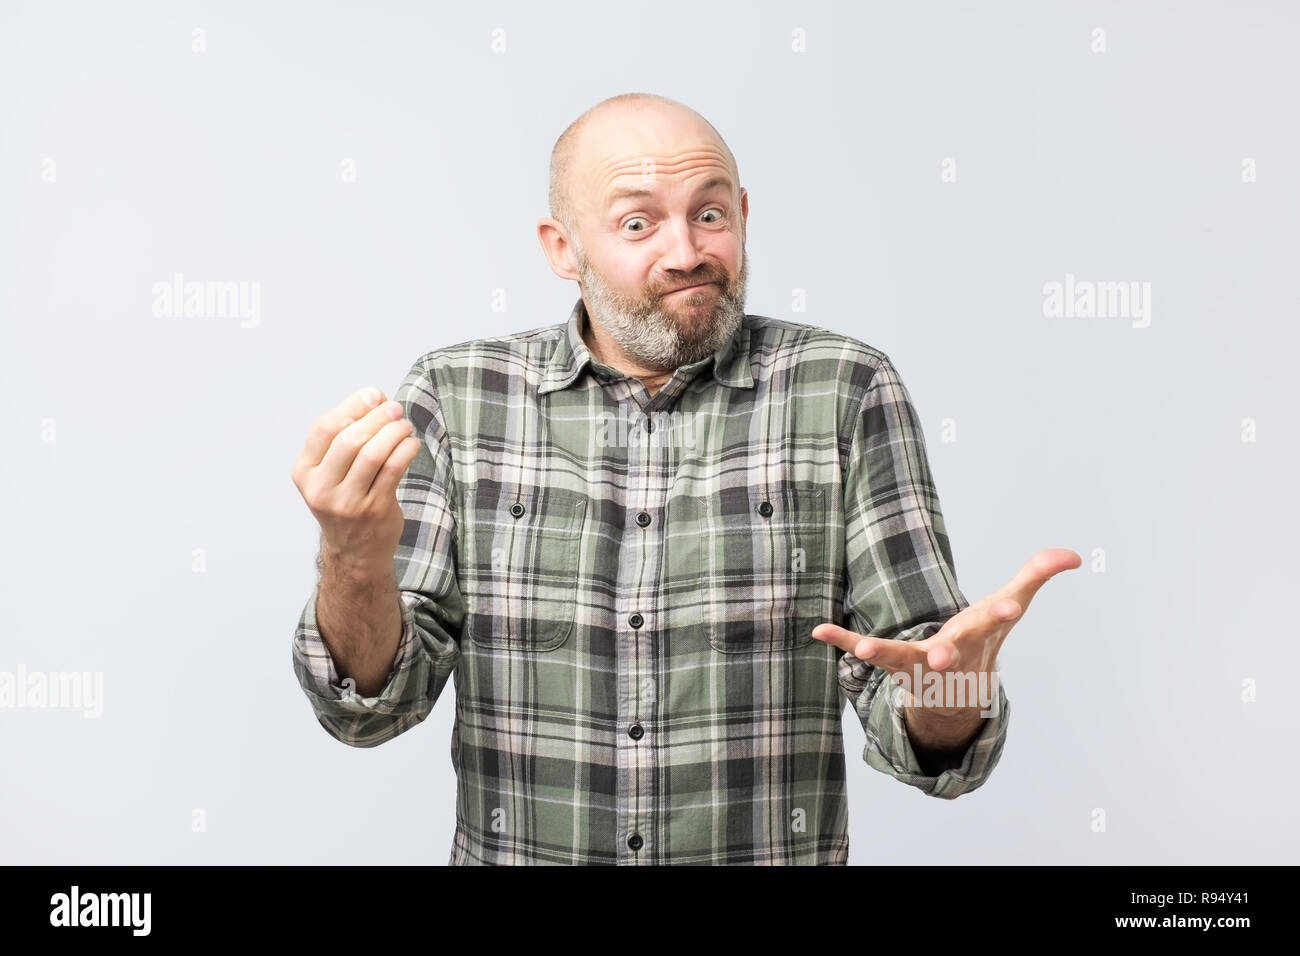 Mature european man explaining something simple being questioned someone, frowning and grimacing - Stock Image